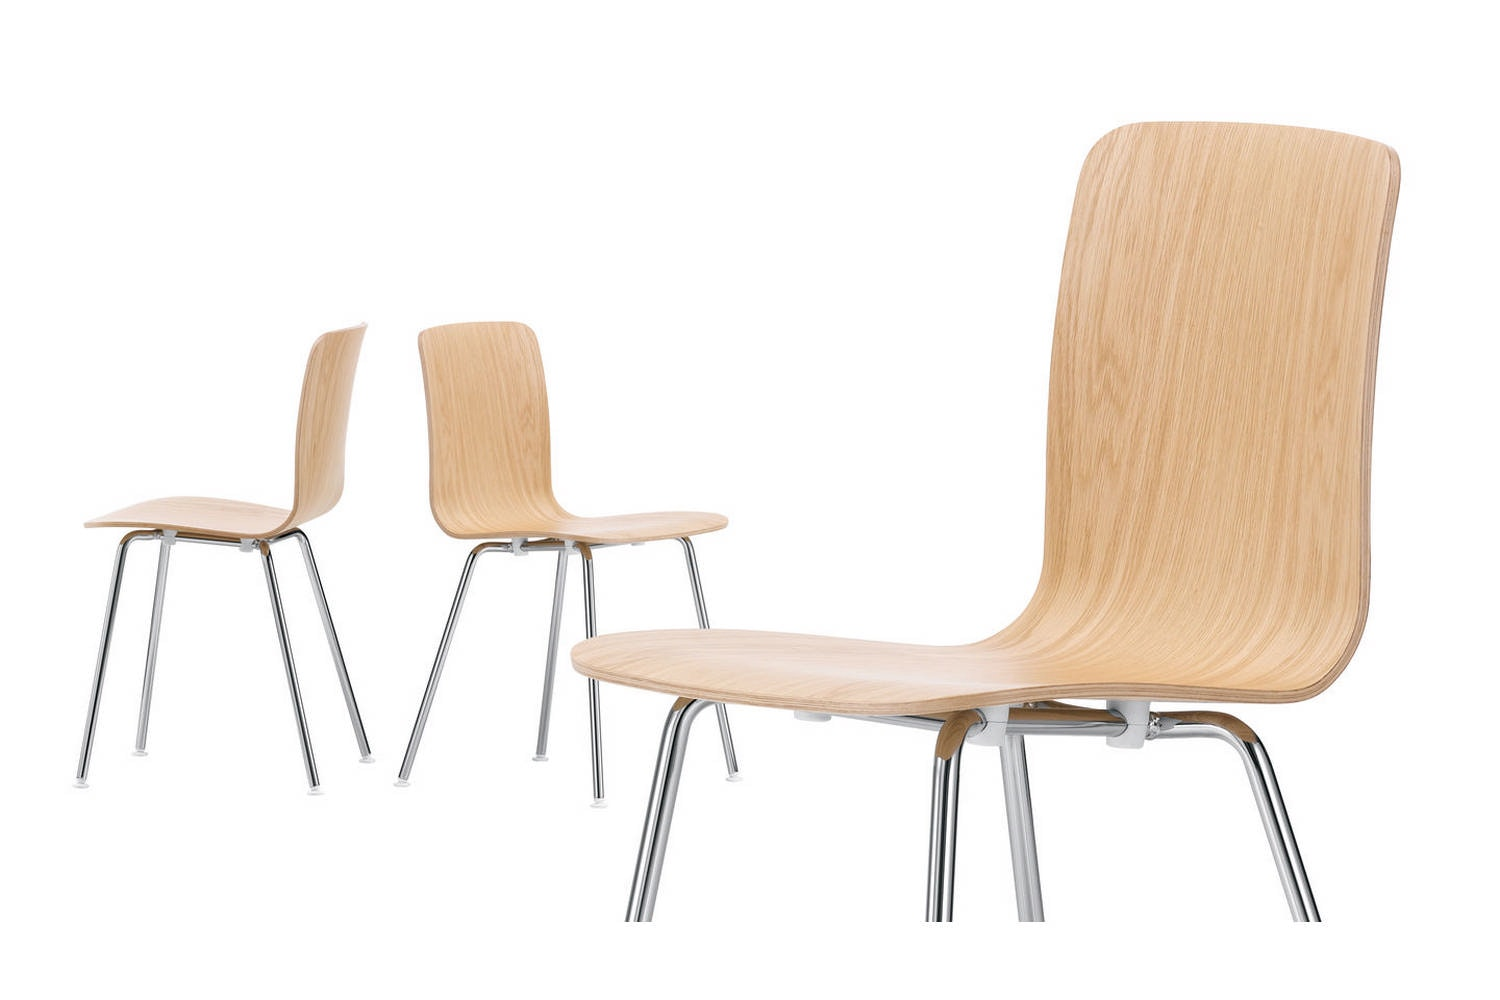 HAL Ply Tube Chair by Jasper Morrison for Vitra